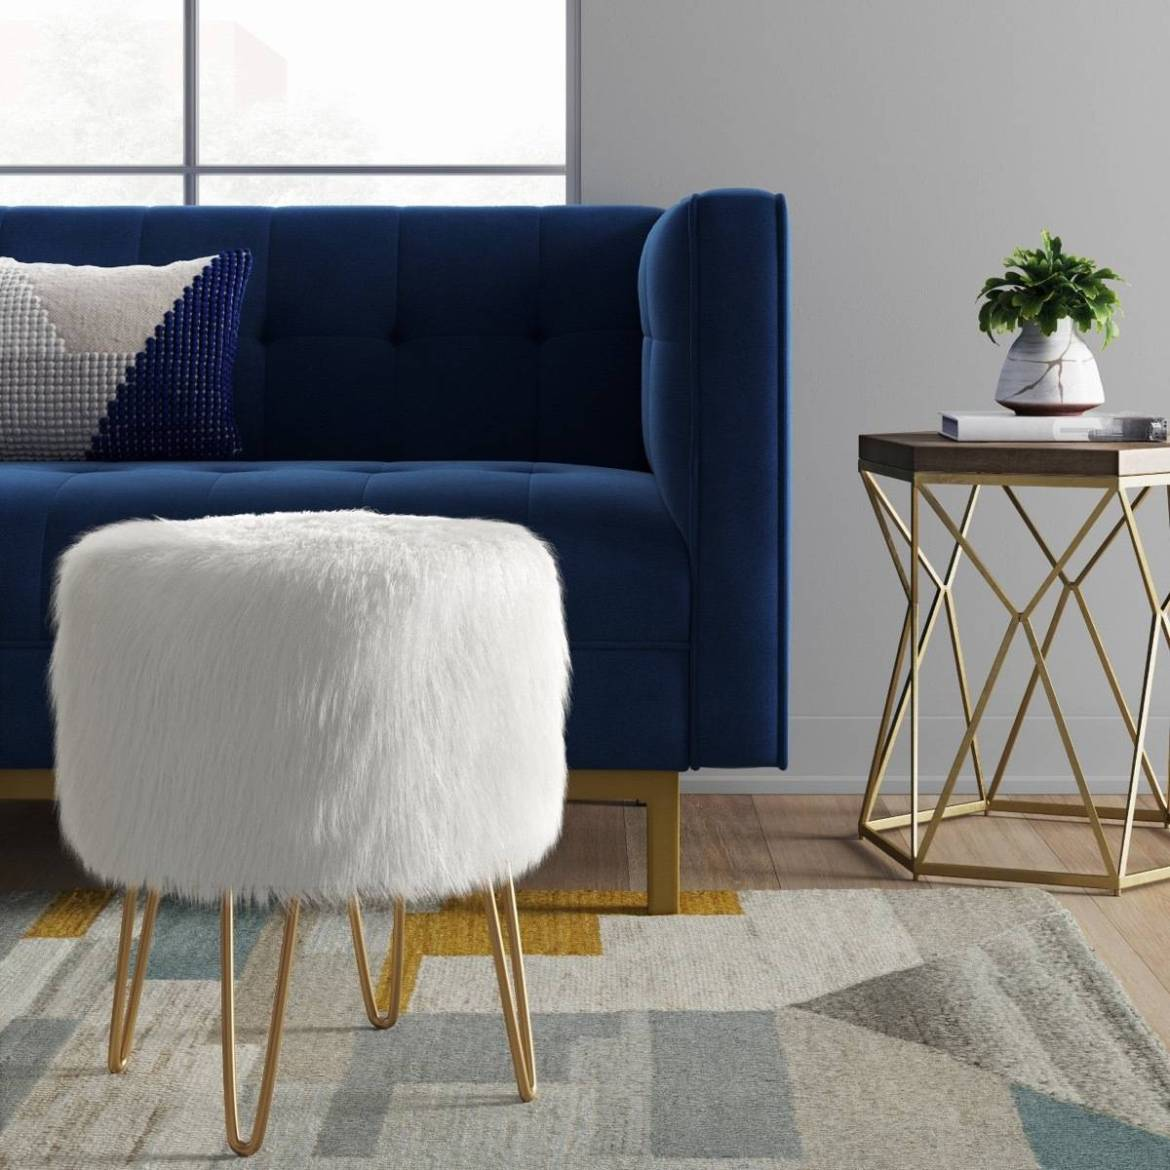 Radovre hairpin ottoman from Target